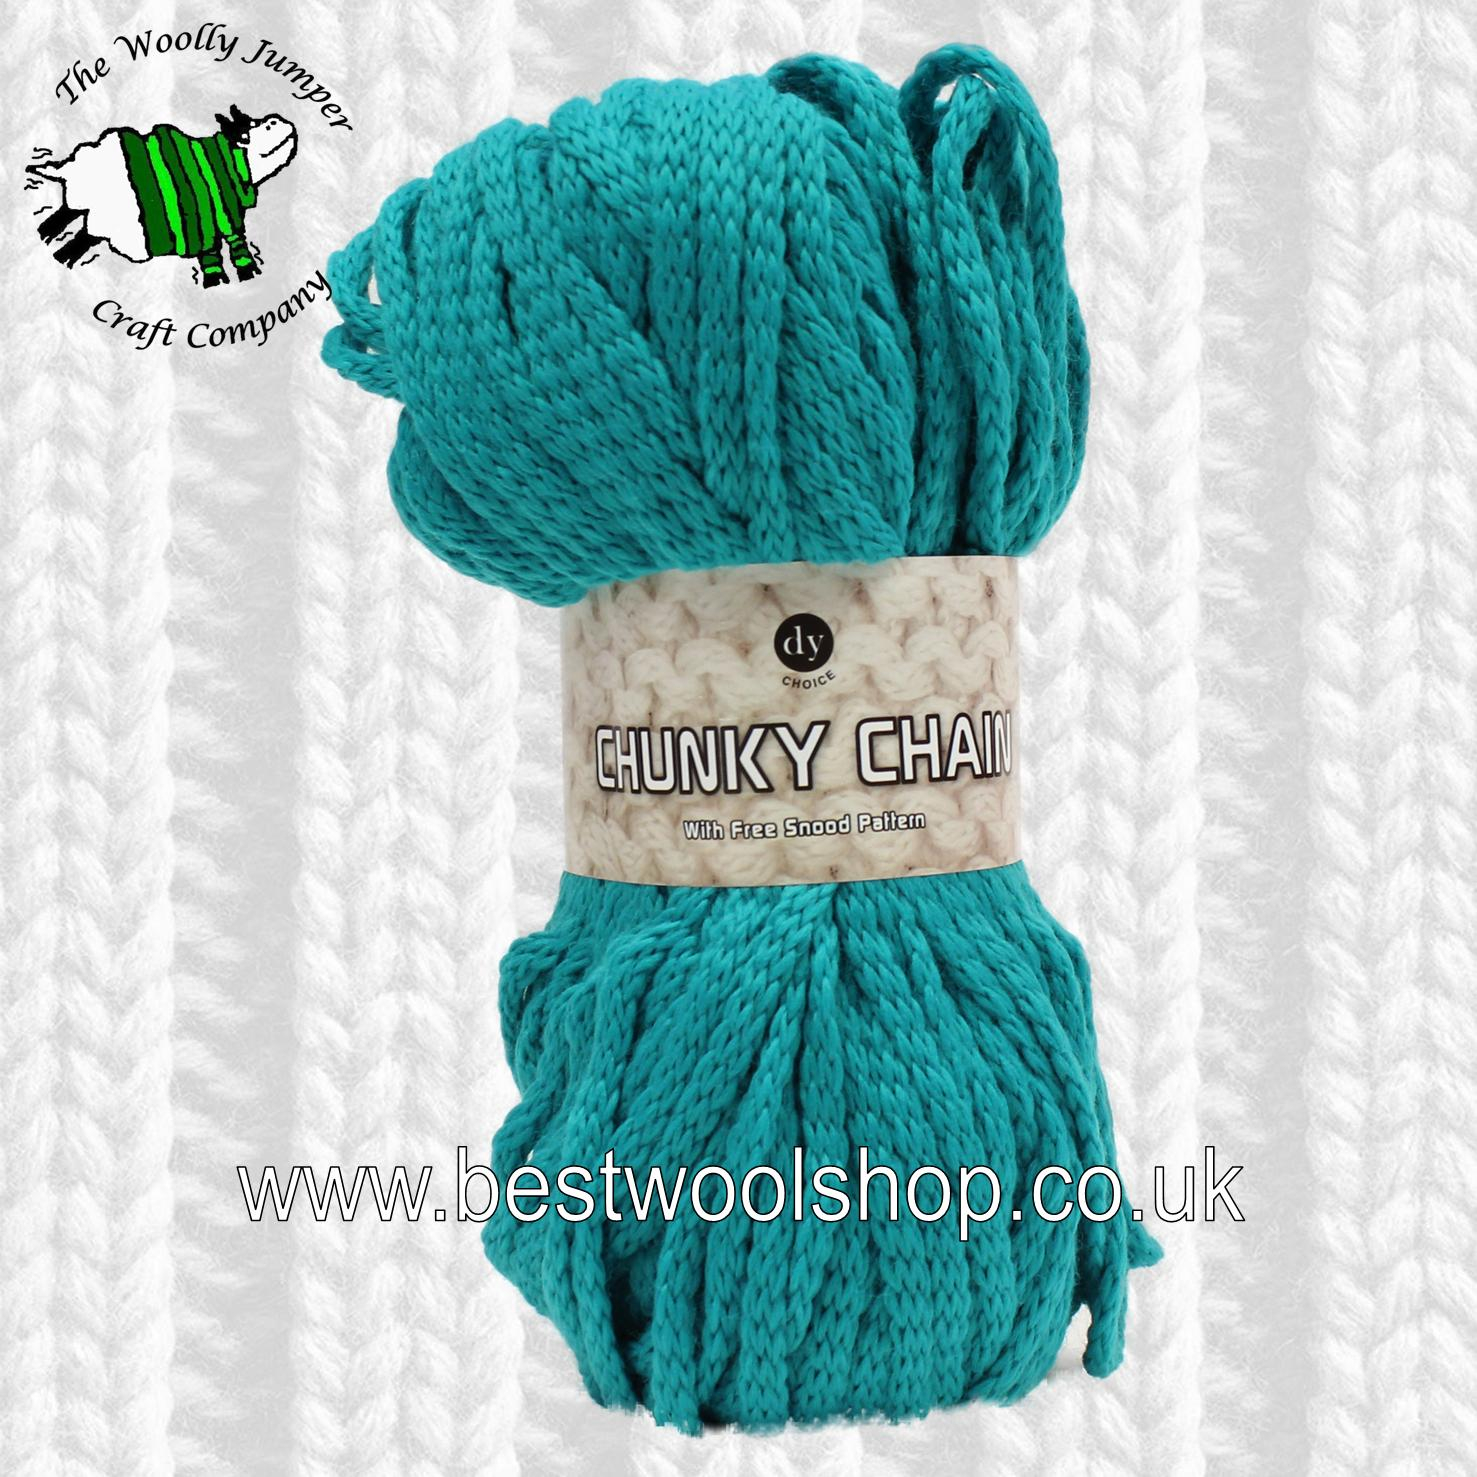 Free Knitting Patterns For Super Chunky Yarn 610 Emerald Dy Choice Chunky Chain Super Chunky Knitting Crochet Yarn From Designer Yarns With Free Snood Knitting Pattern